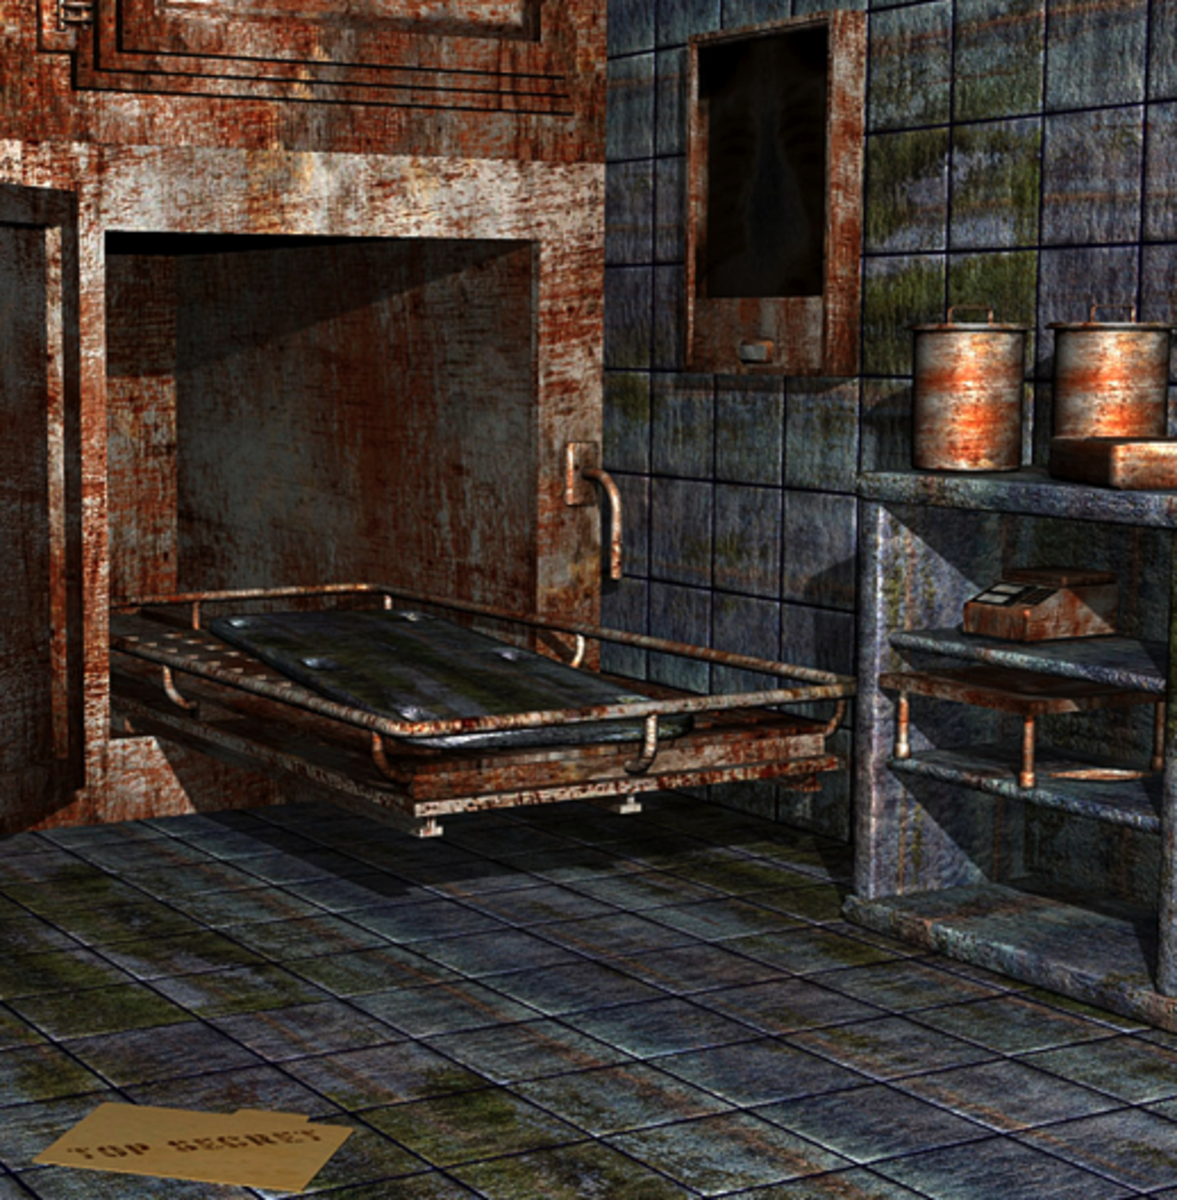 Old-style morgue